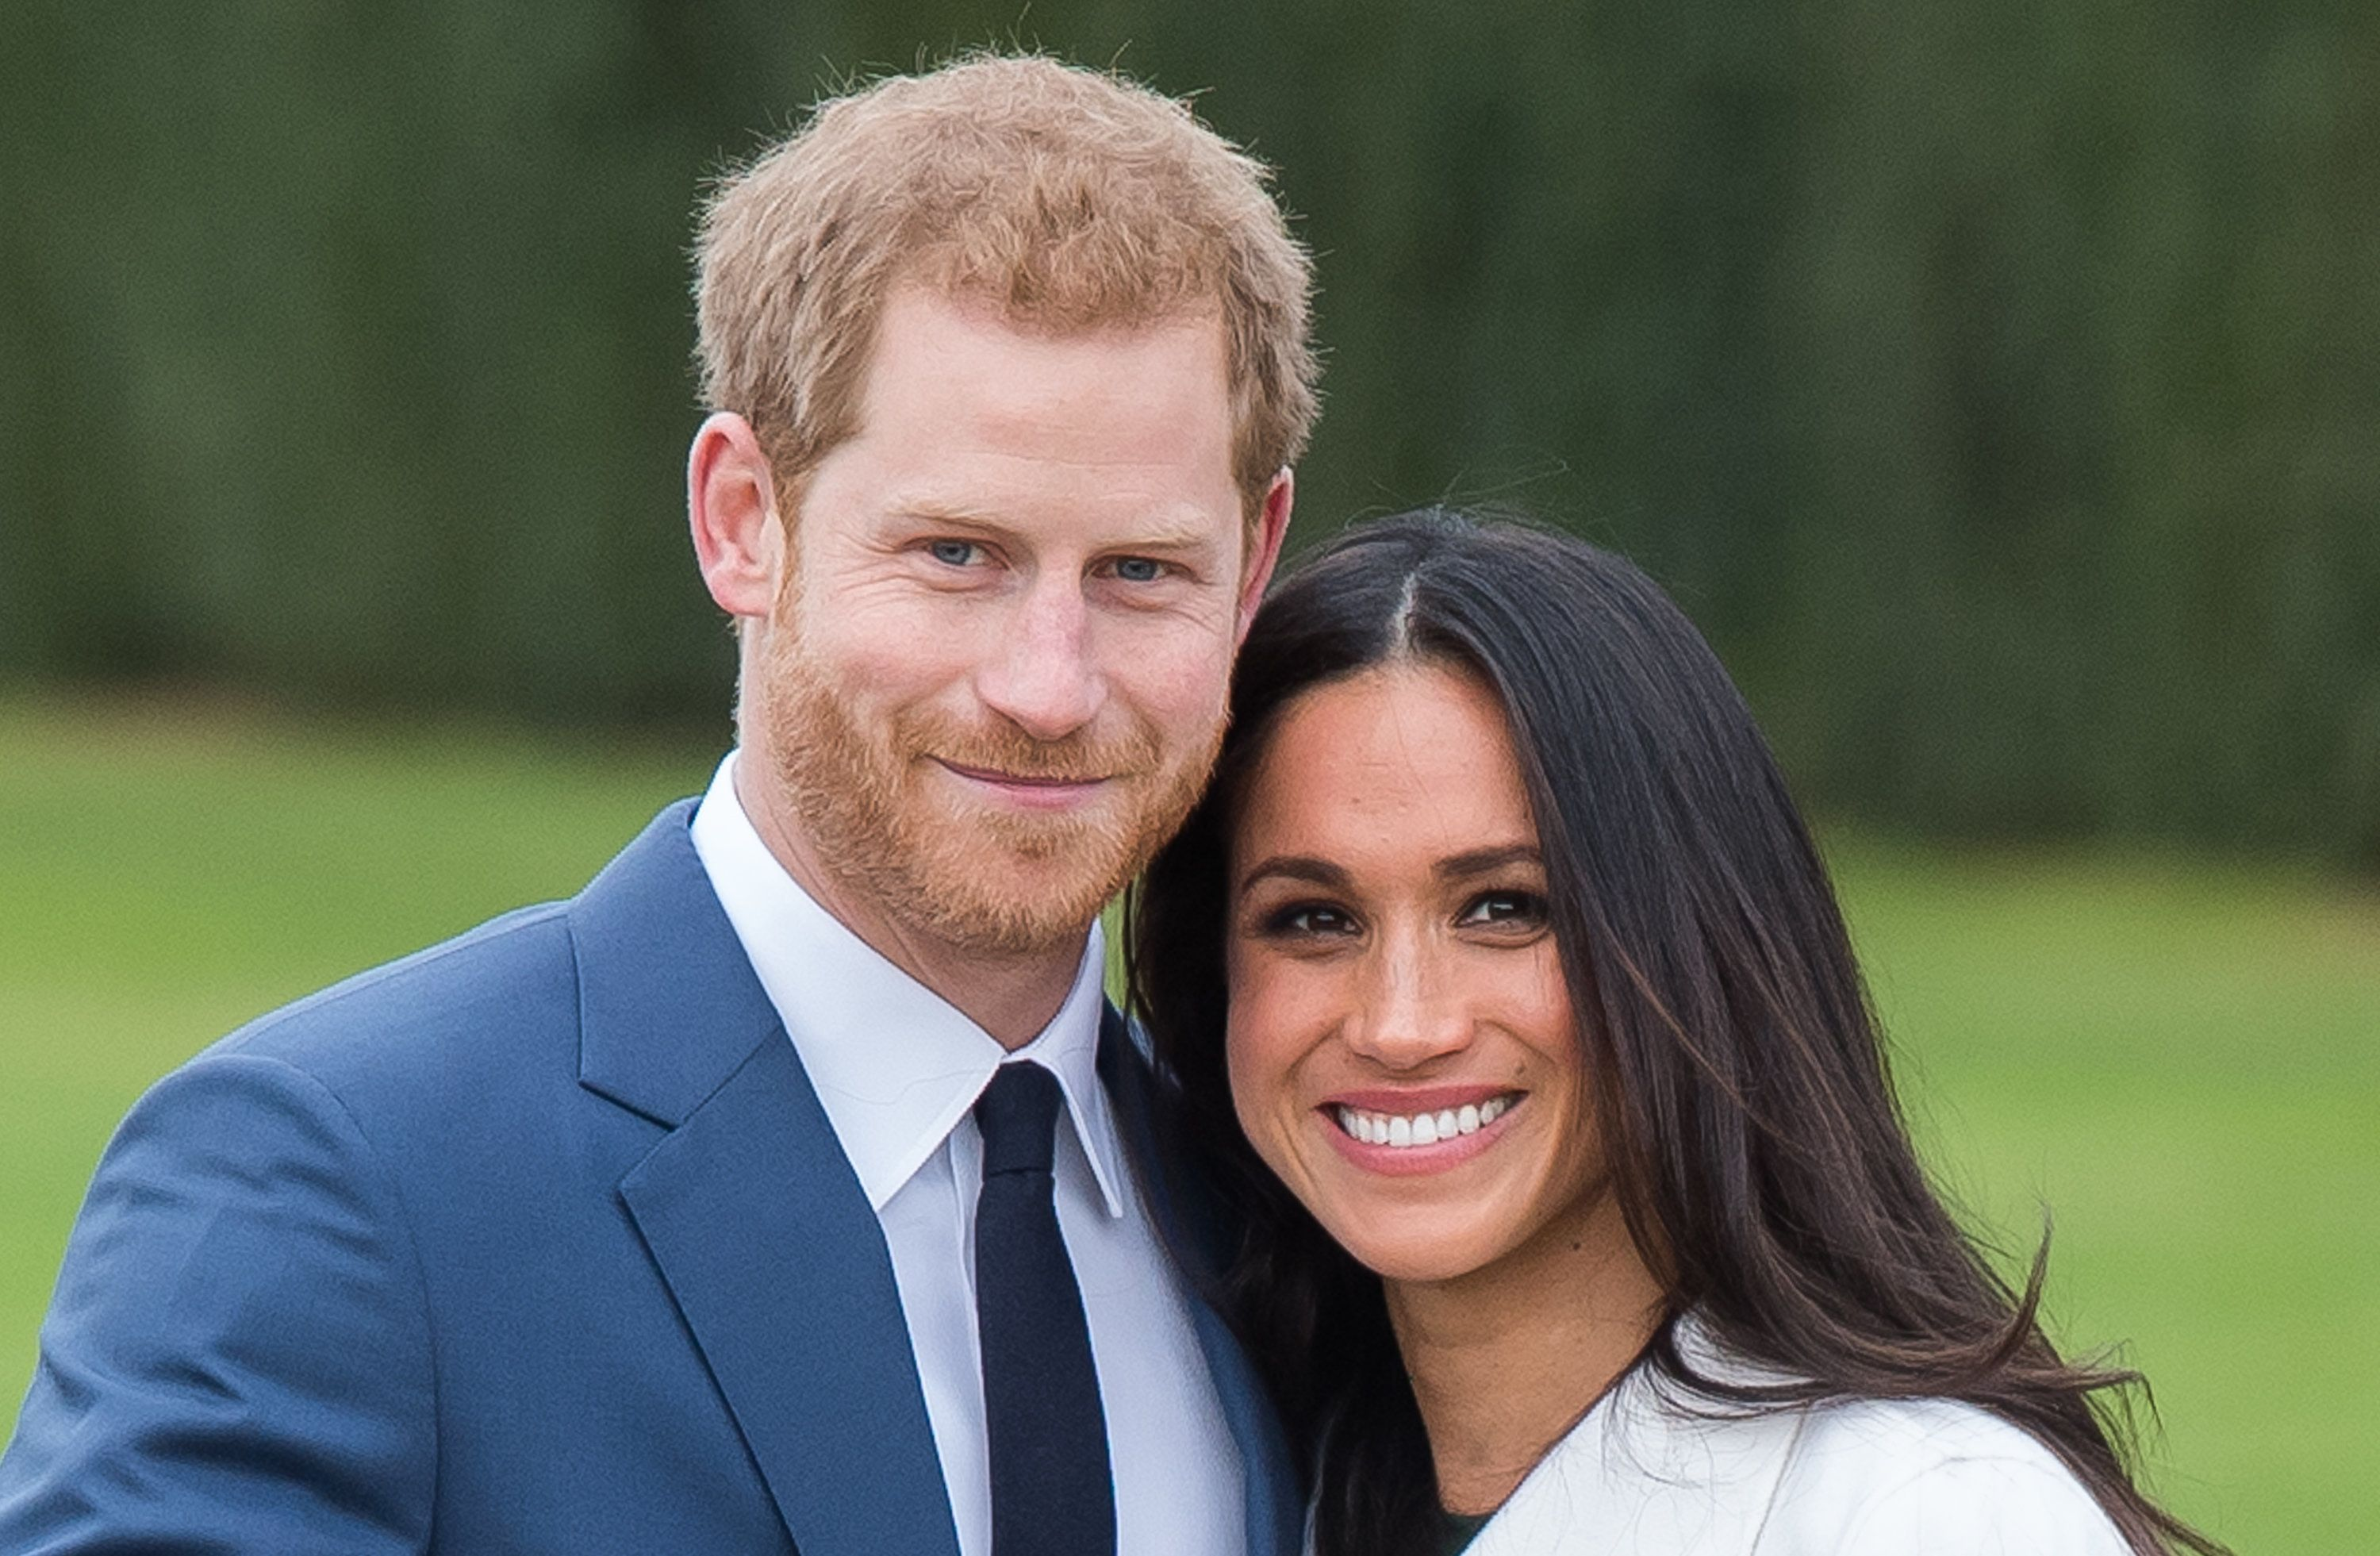 Prince Harry and Meghan Markle's Wedding Date Has Been Announced